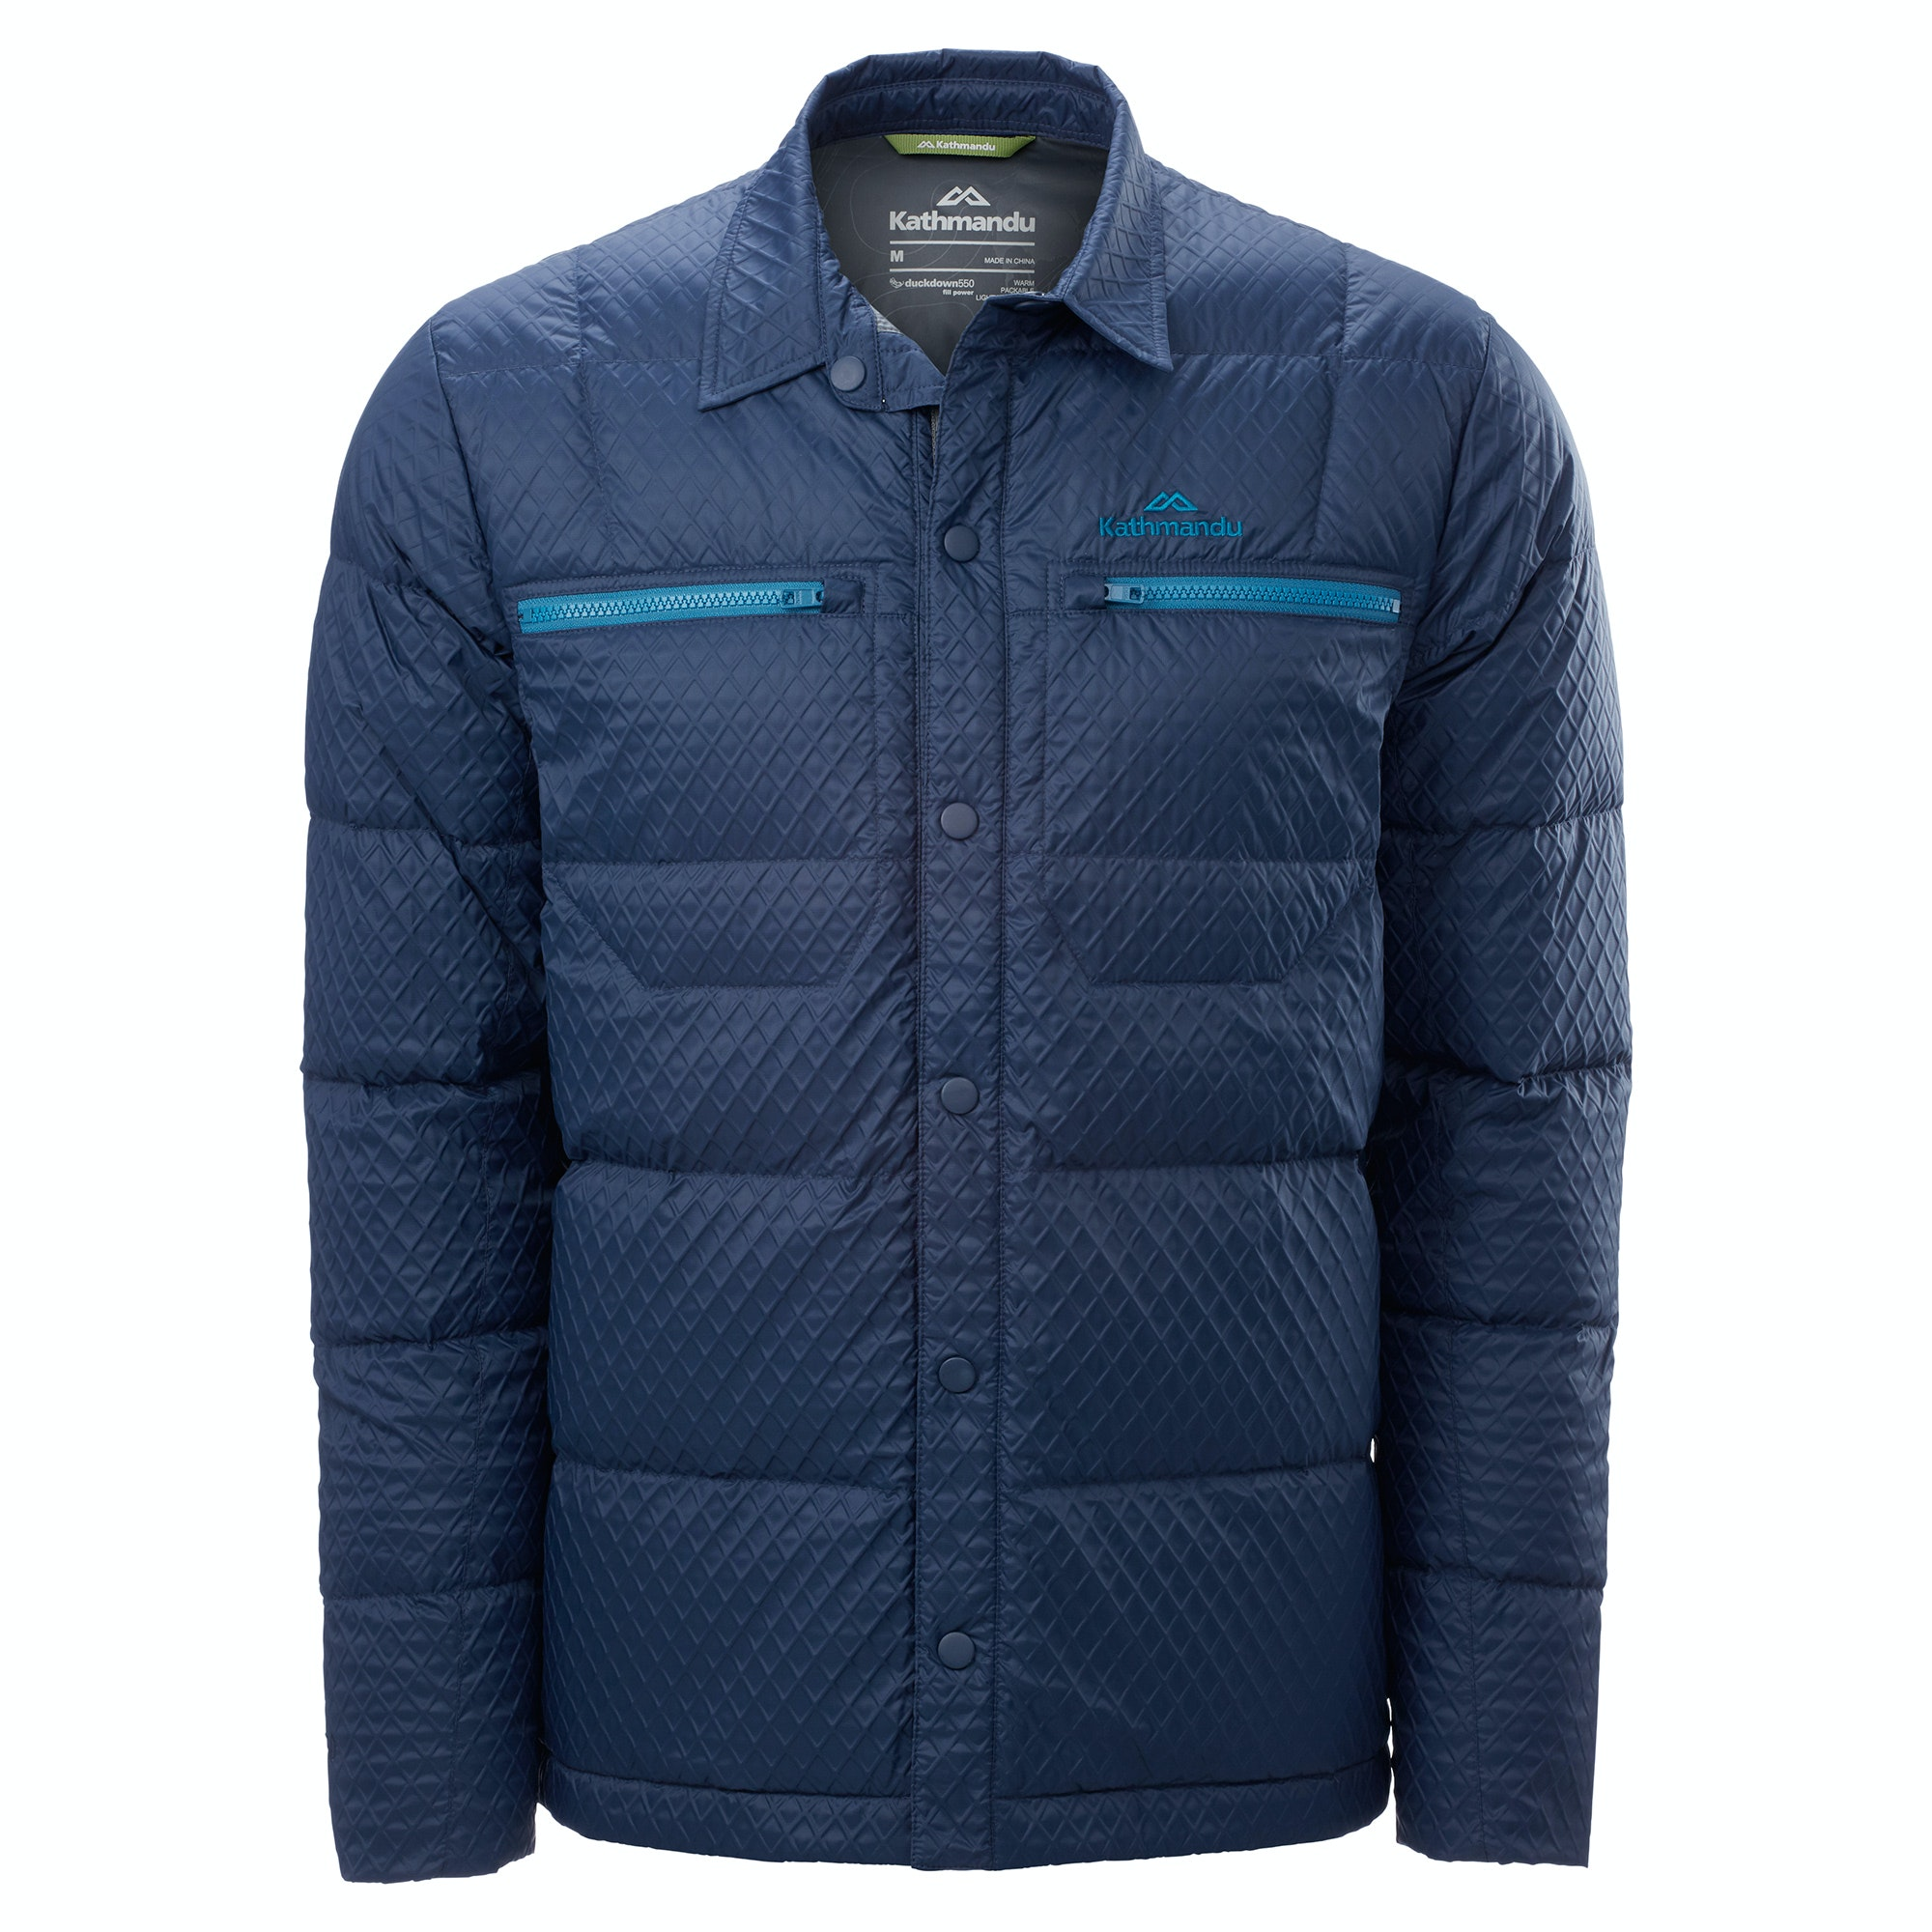 View more of the Federate Men's Down Shacket